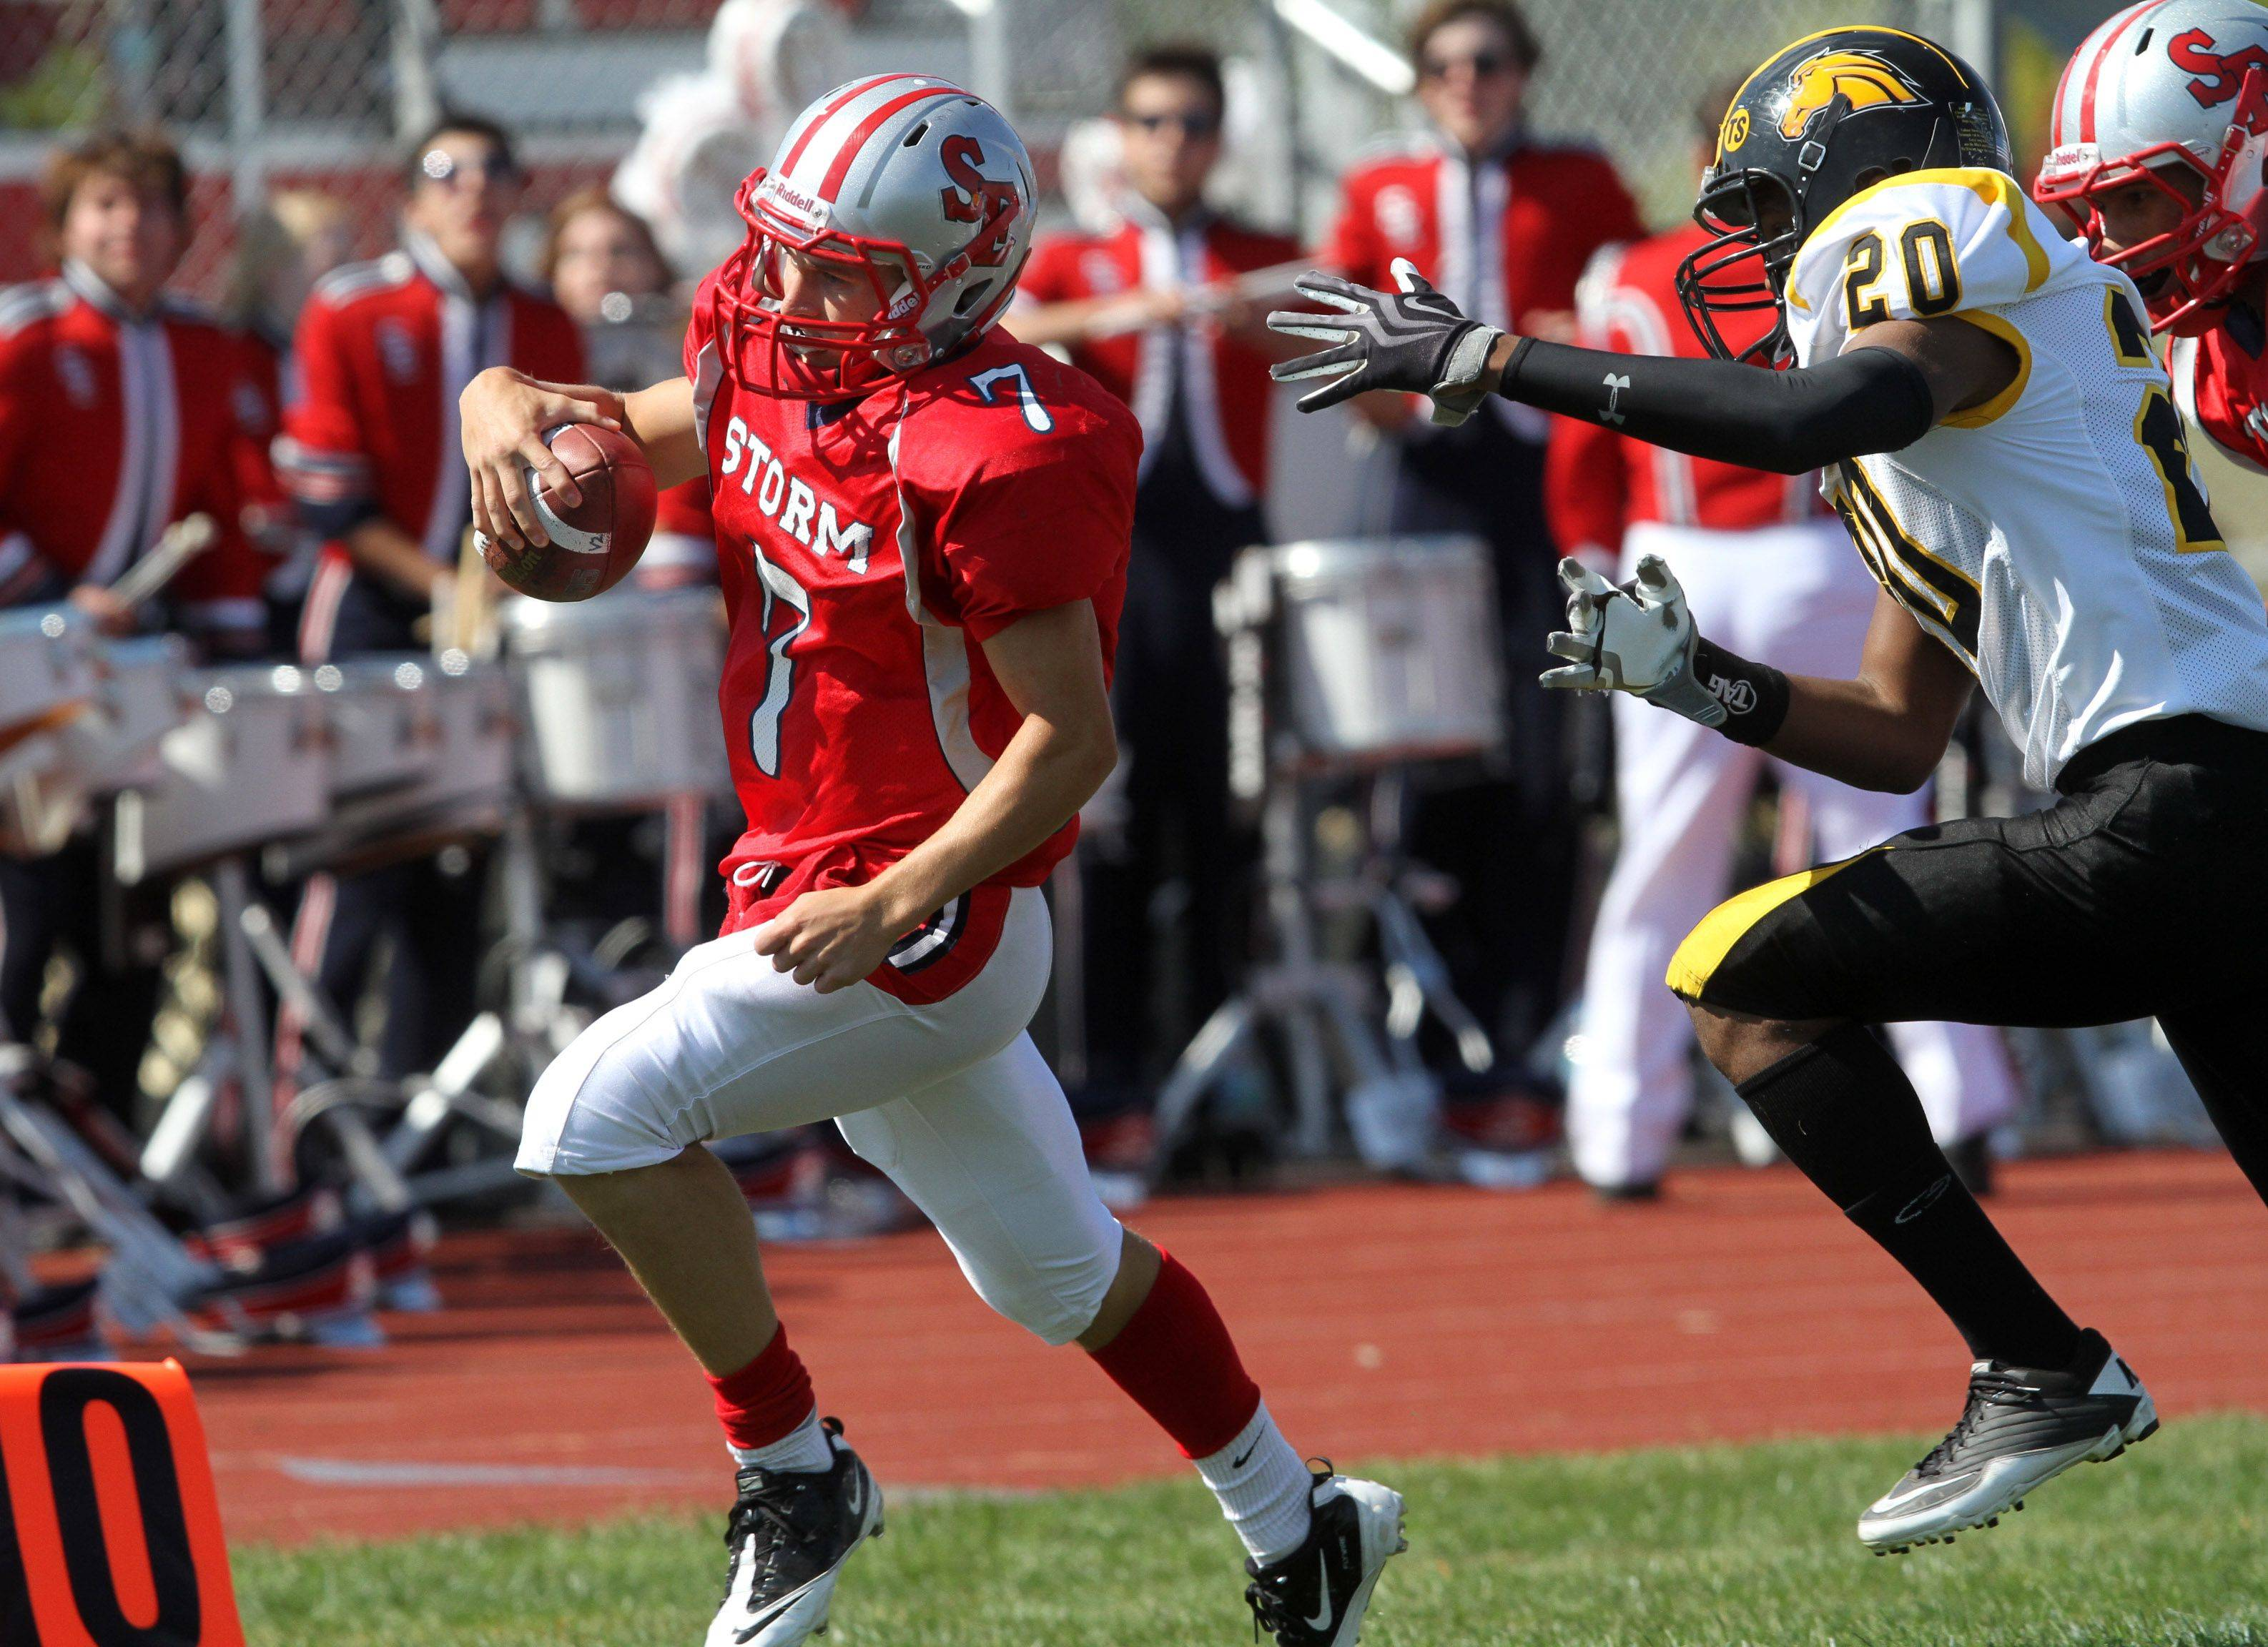 South Elgin's Zachary Gross scores the team's first home-field touchdown against Metea Valley Saturday.